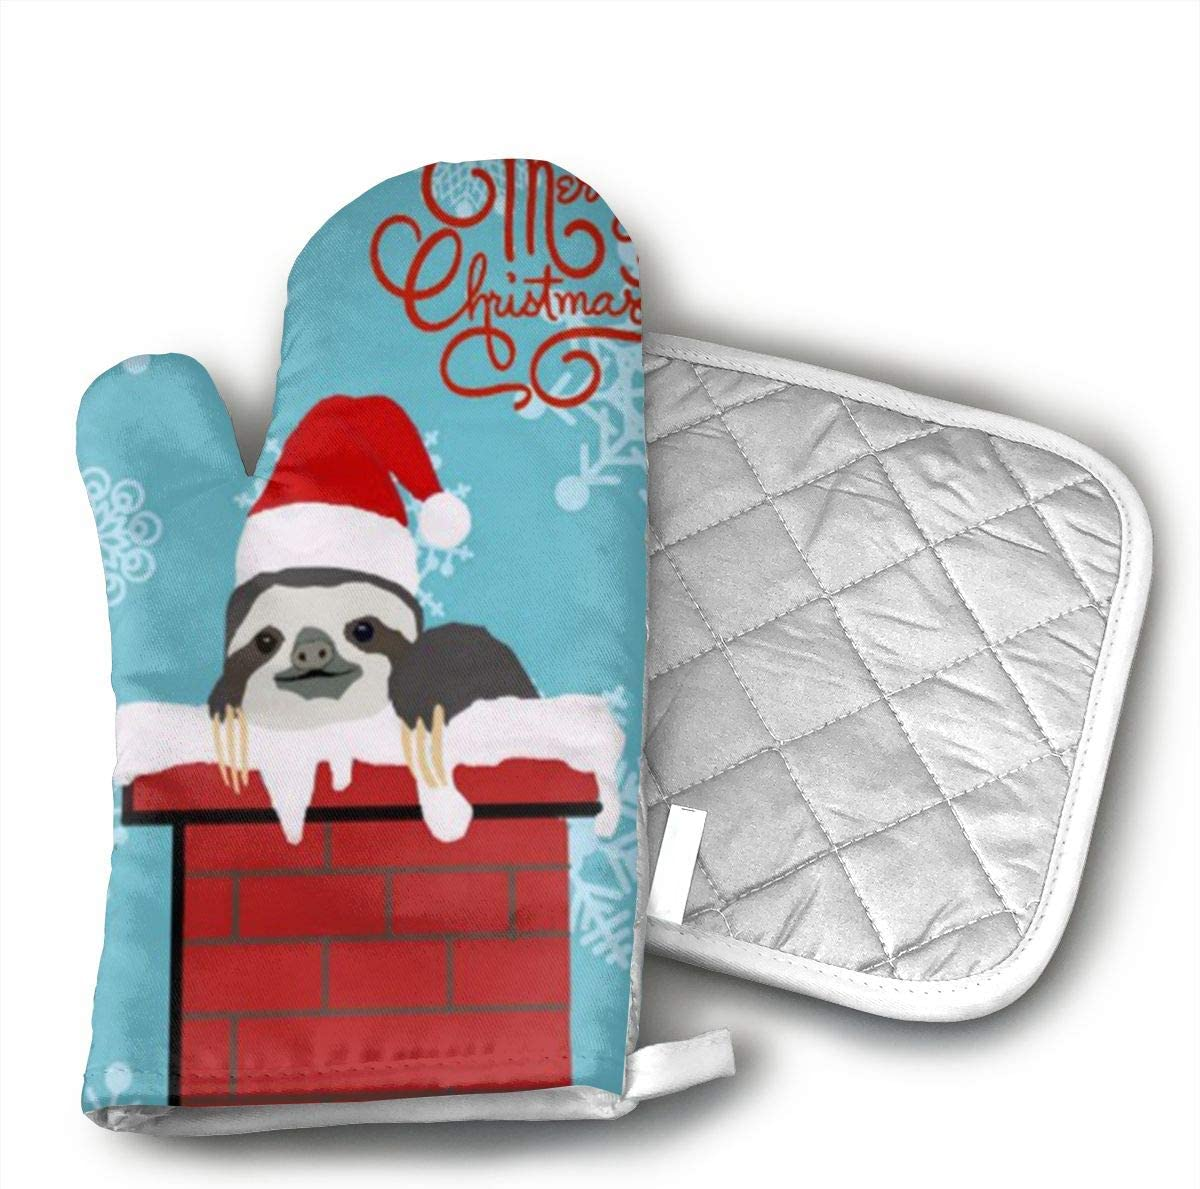 Merry Christmas Sloth Oven Mitts,Heat Resistant Oven Gloves and Pot Holders, Safe BBQ Cooking Baking Grilling